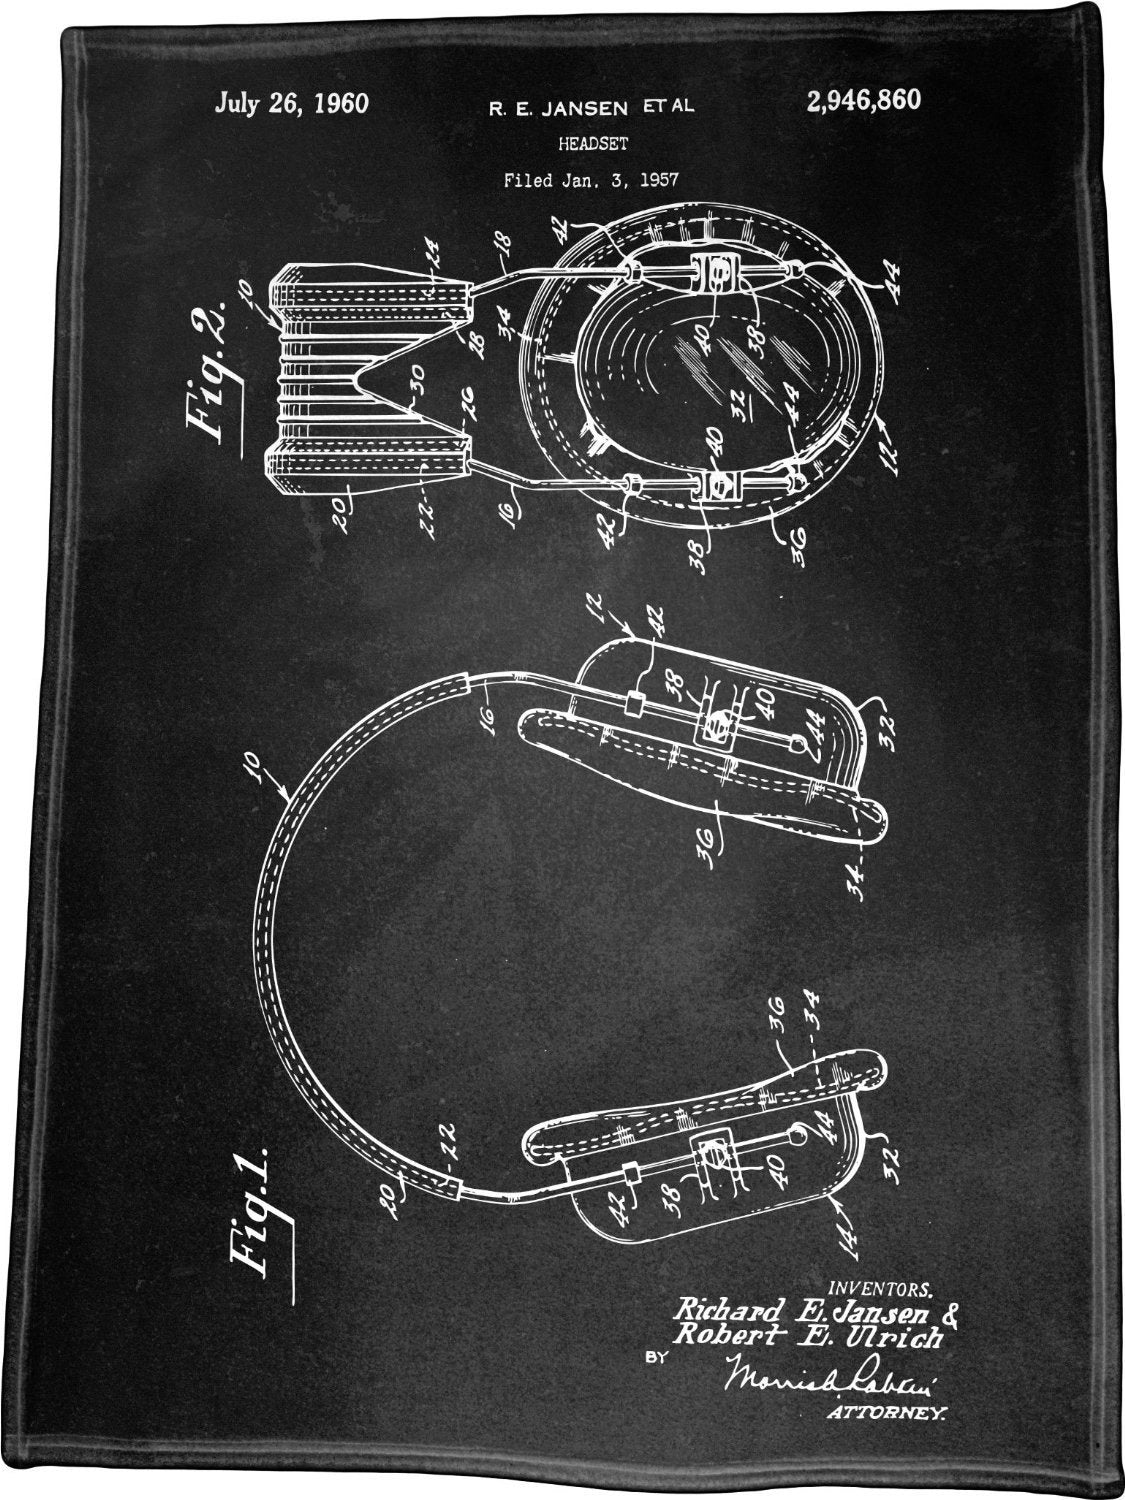 "Headset Patent Illustration by Richard E Jansen Polar Fleece Throw Blanket / Tapestry Wall Hanging 60"" x 80"""